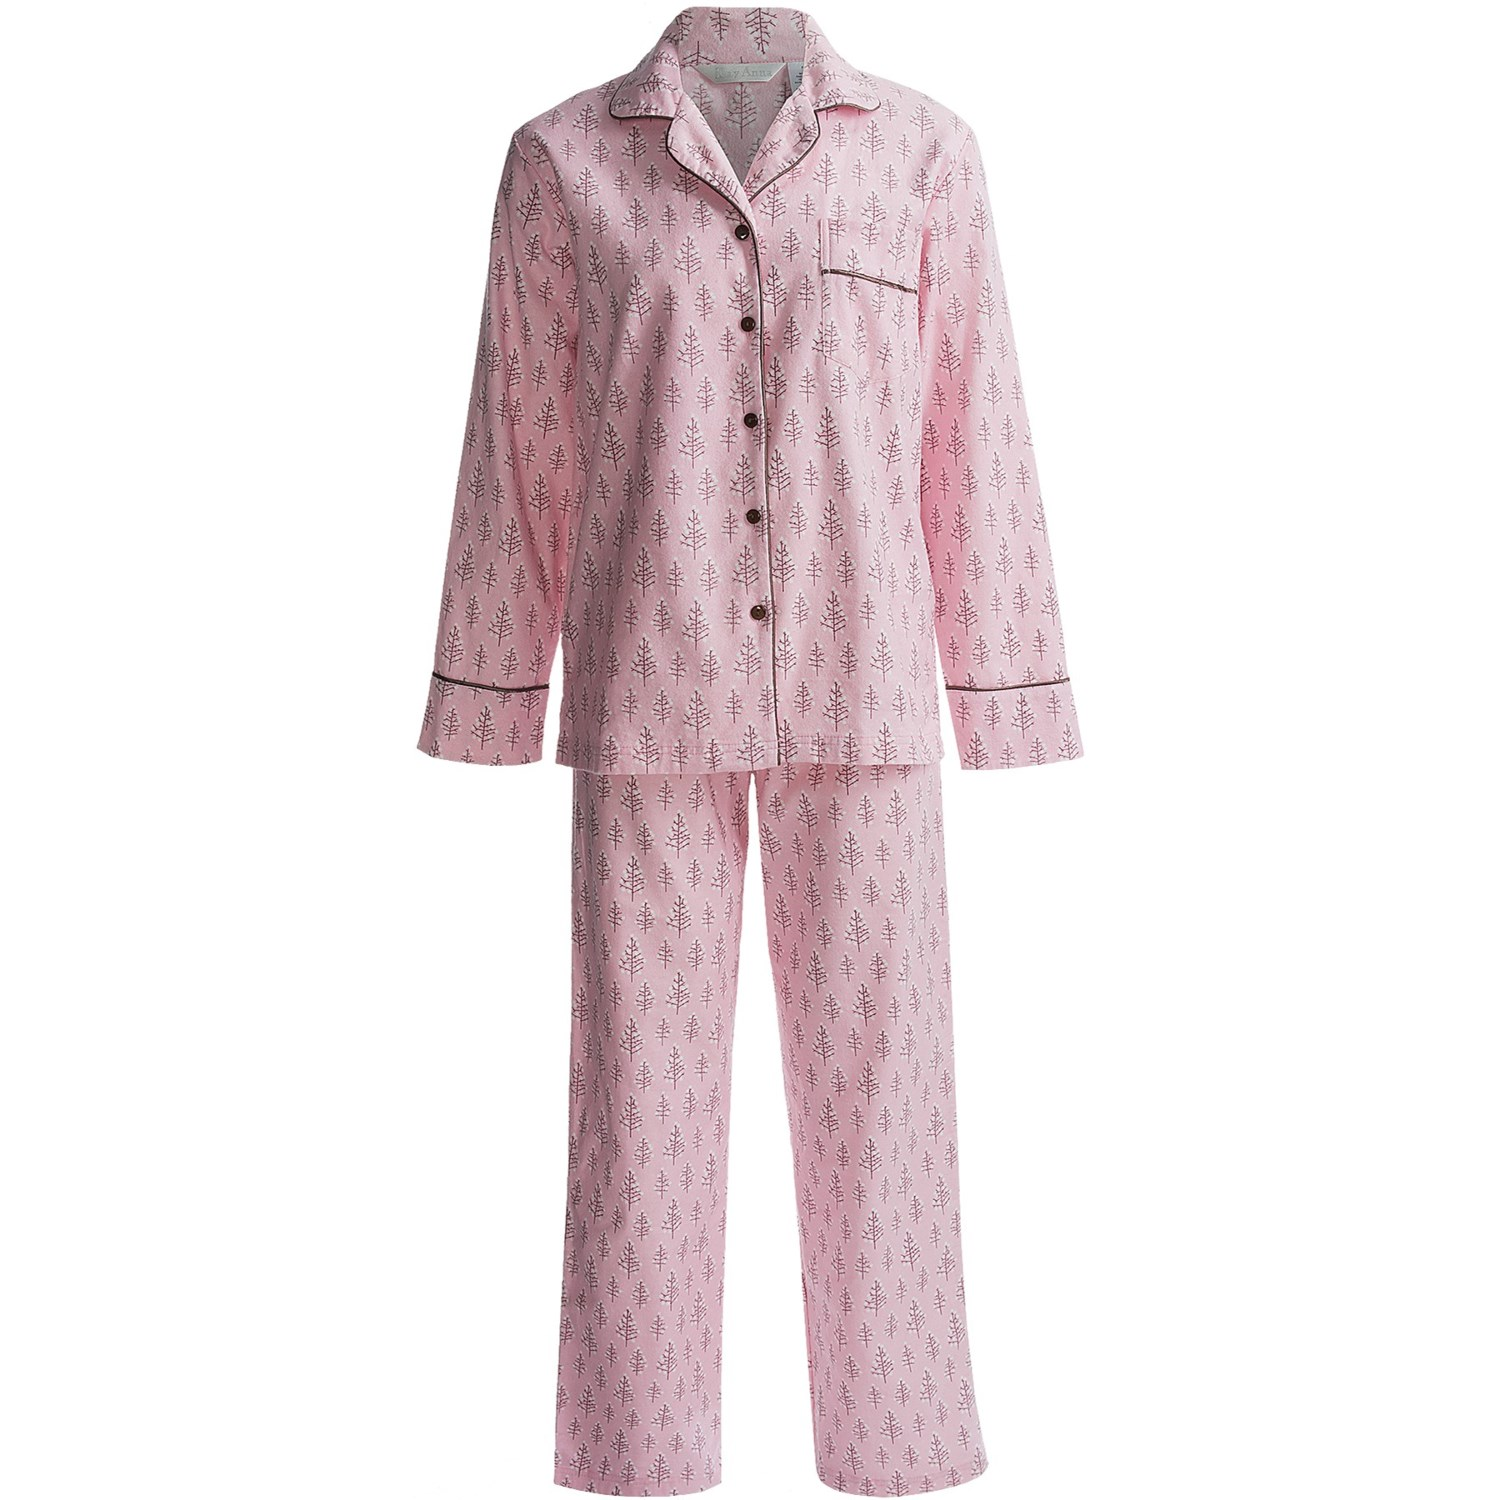 Amoy madrola Women Cotton Sleepwear/Short Sets/Pajamas Set SY by Amoy madrola. $ - $ $ 16 $ 17 99 Prime. FREE Shipping on eligible orders. Some sizes/colors are Prime eligible. out of 5 stars Product Features SLEEP in STYLE! - Dream Big with this Two Piece Womens Pajama .